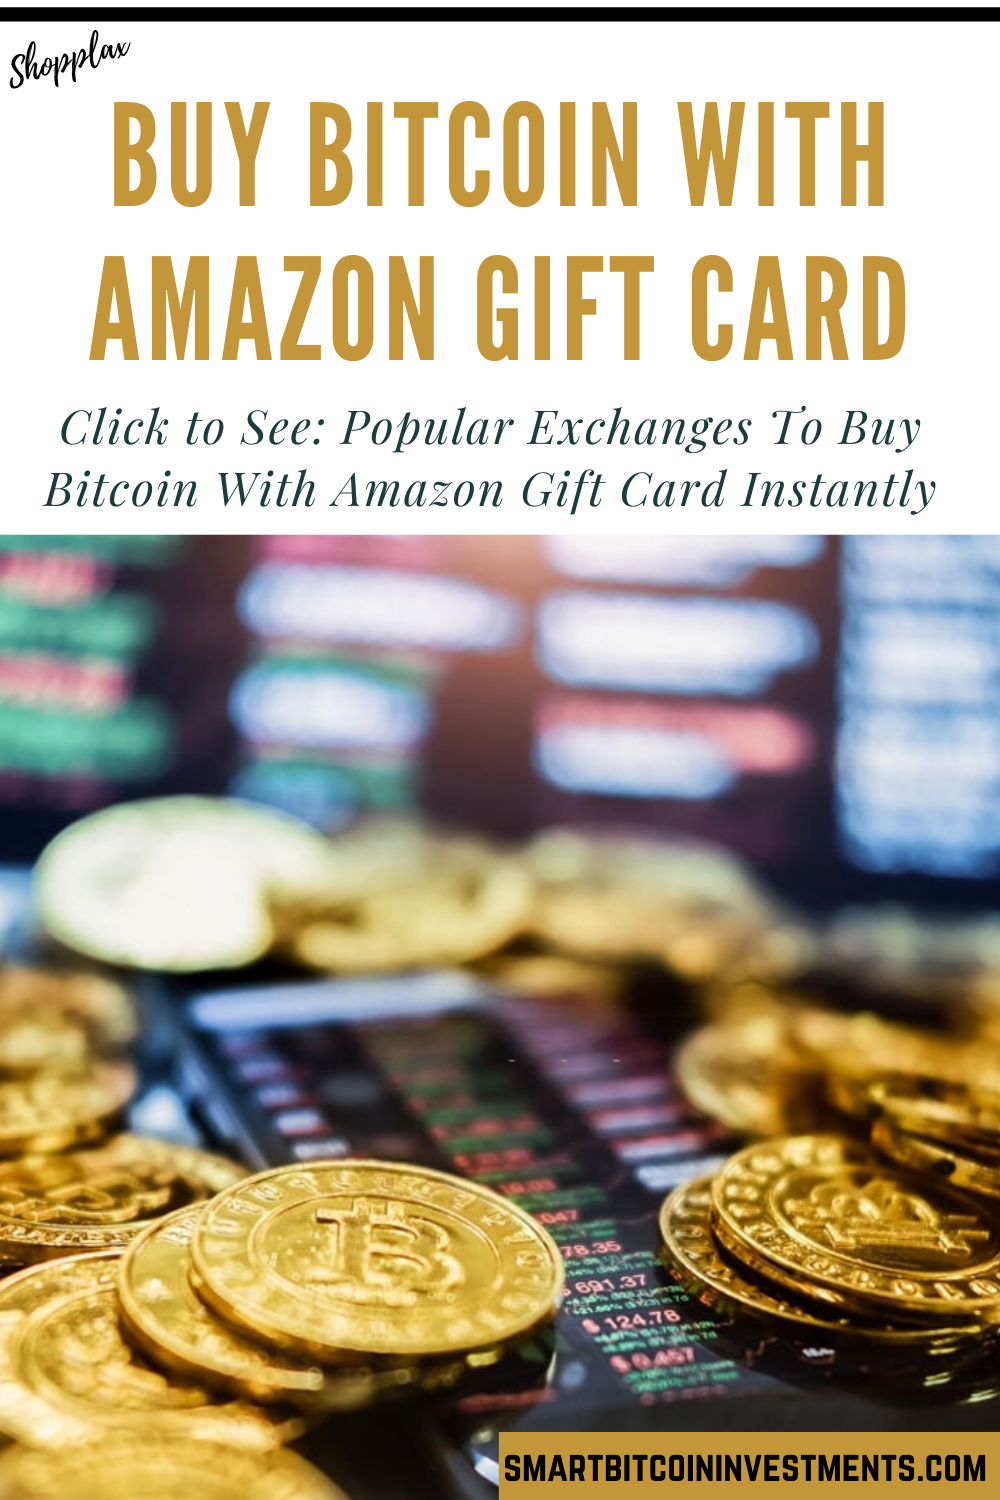 Buy Amazon Gift Card Using Btc